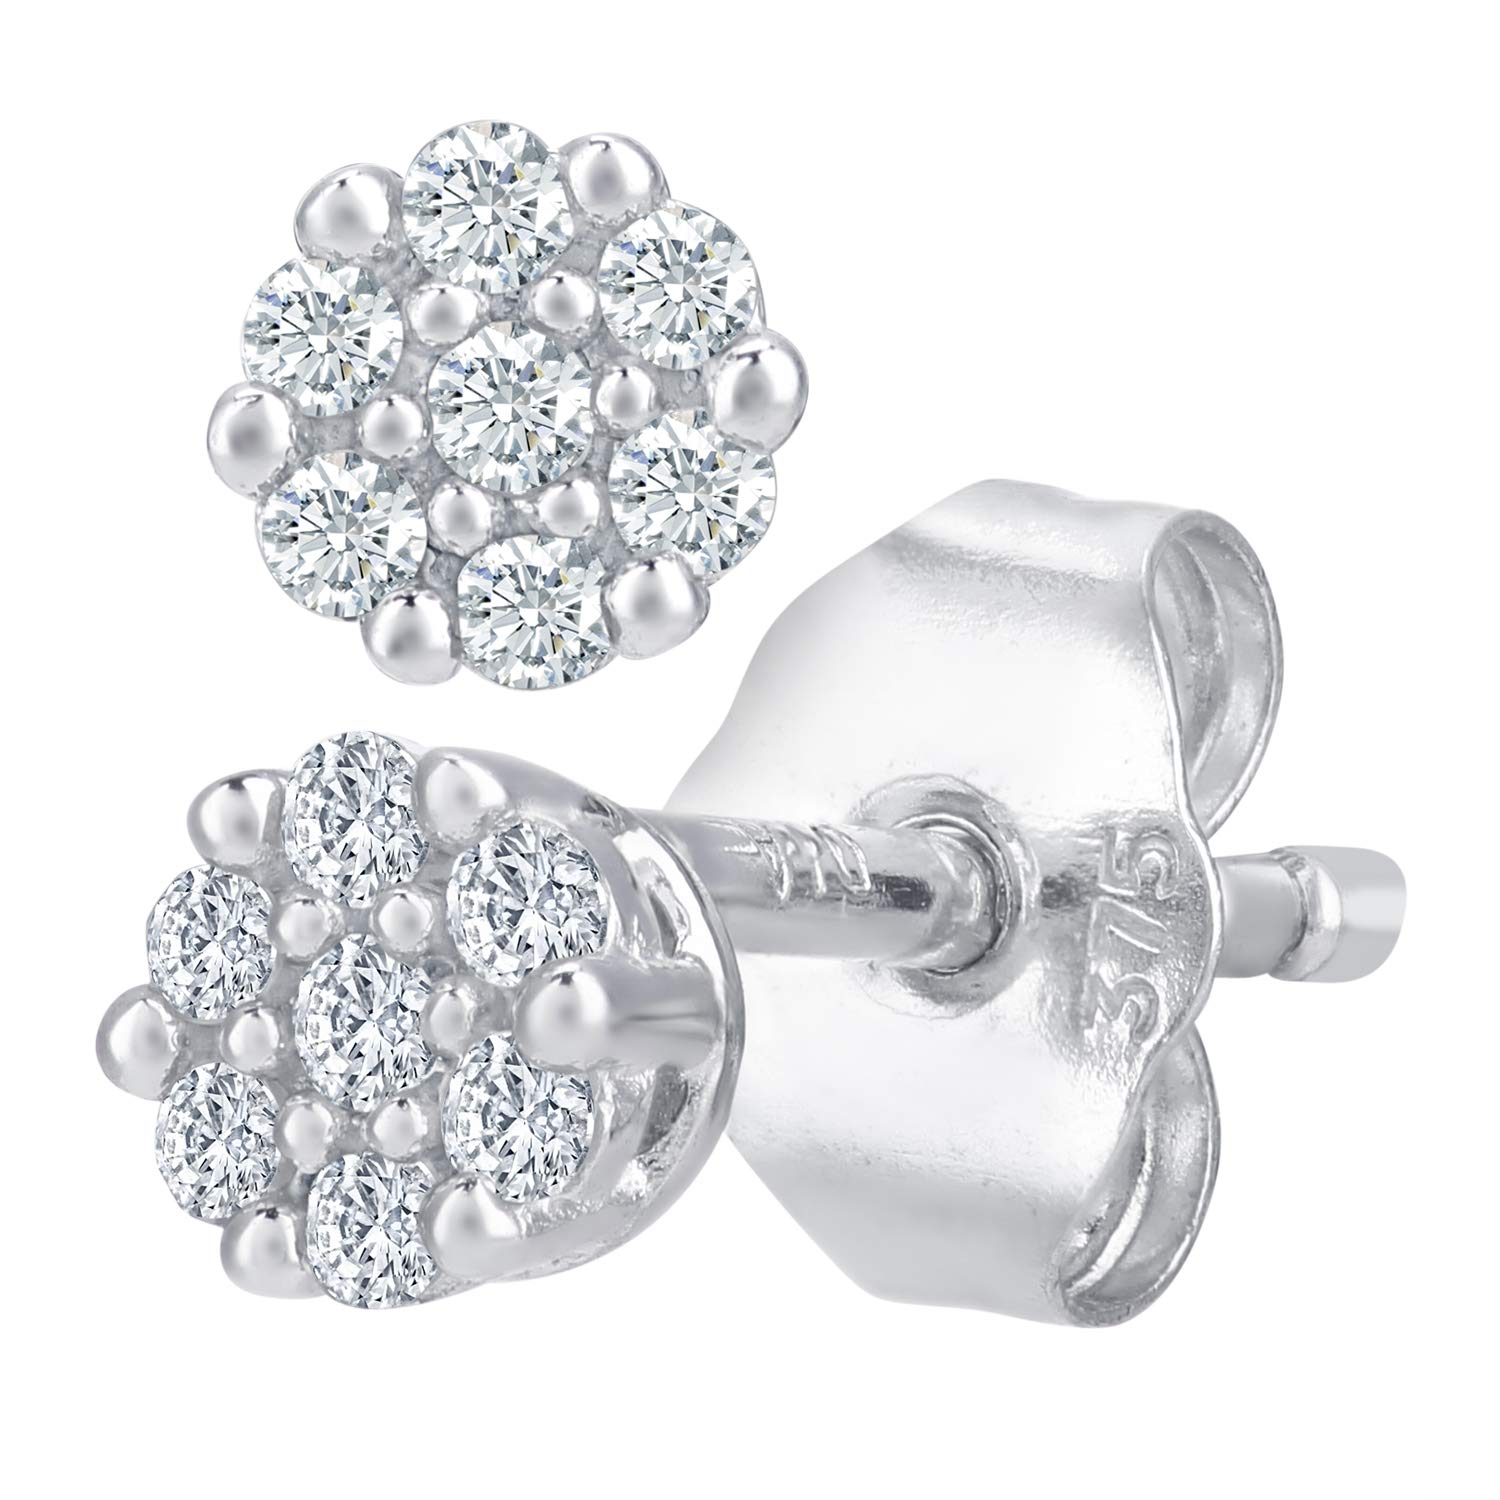 446d831e07a40 Naava 0.07 ct Diamond Earrings in 9 ct White Gold